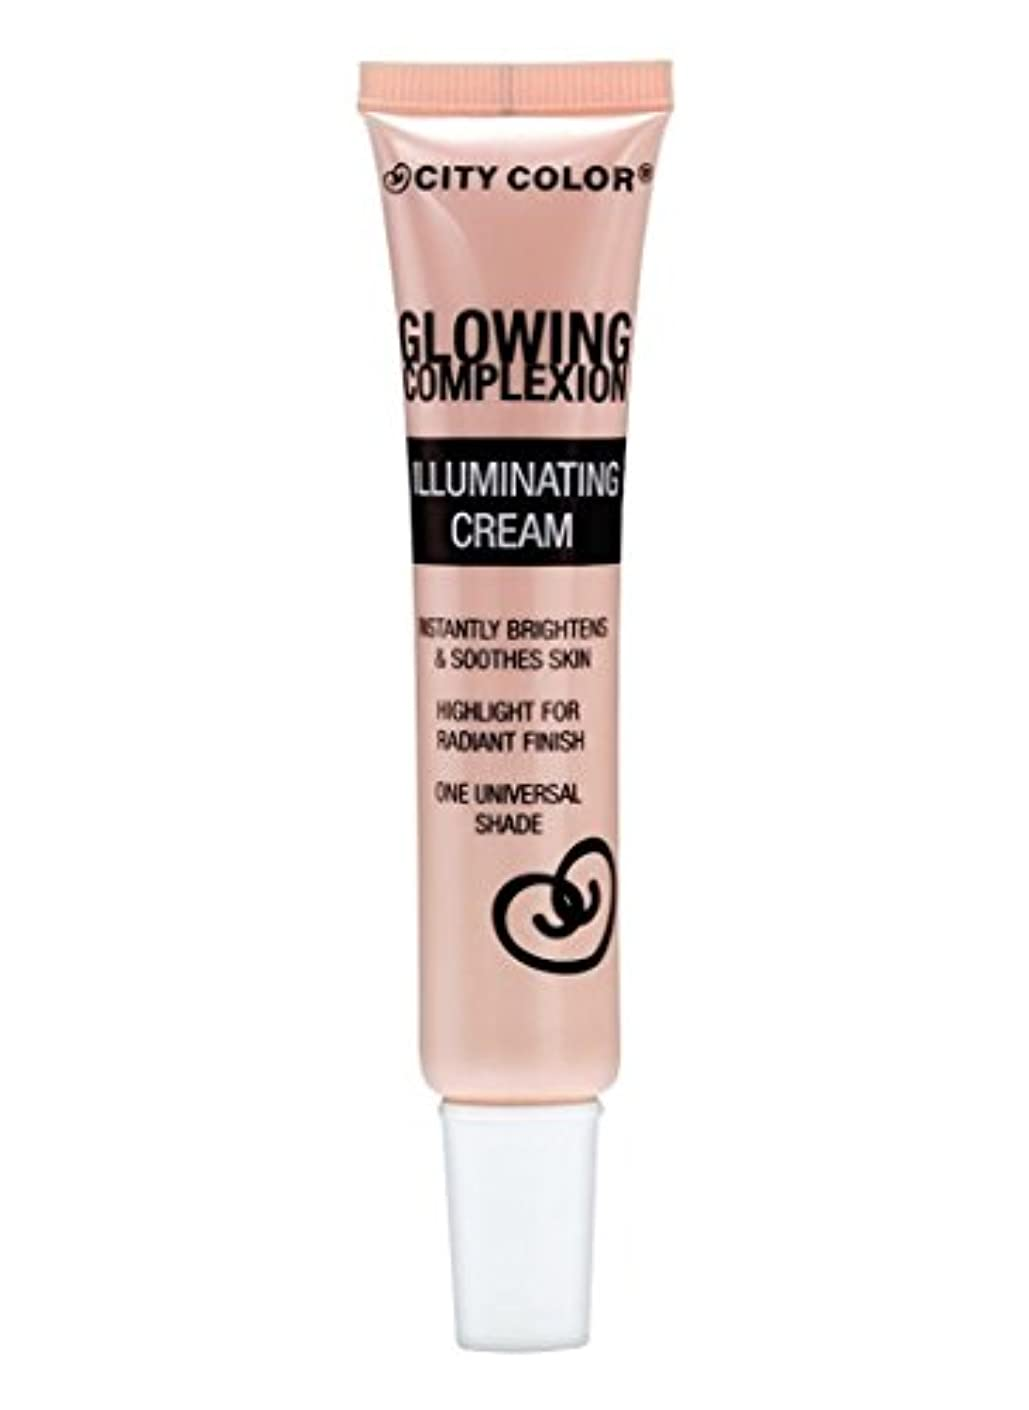 落とし穴前兆切るCITY COLOR Glowing Complexion Illuminating Cream - Net Wt. 1.015 fl. oz. / 30 mL (並行輸入品)